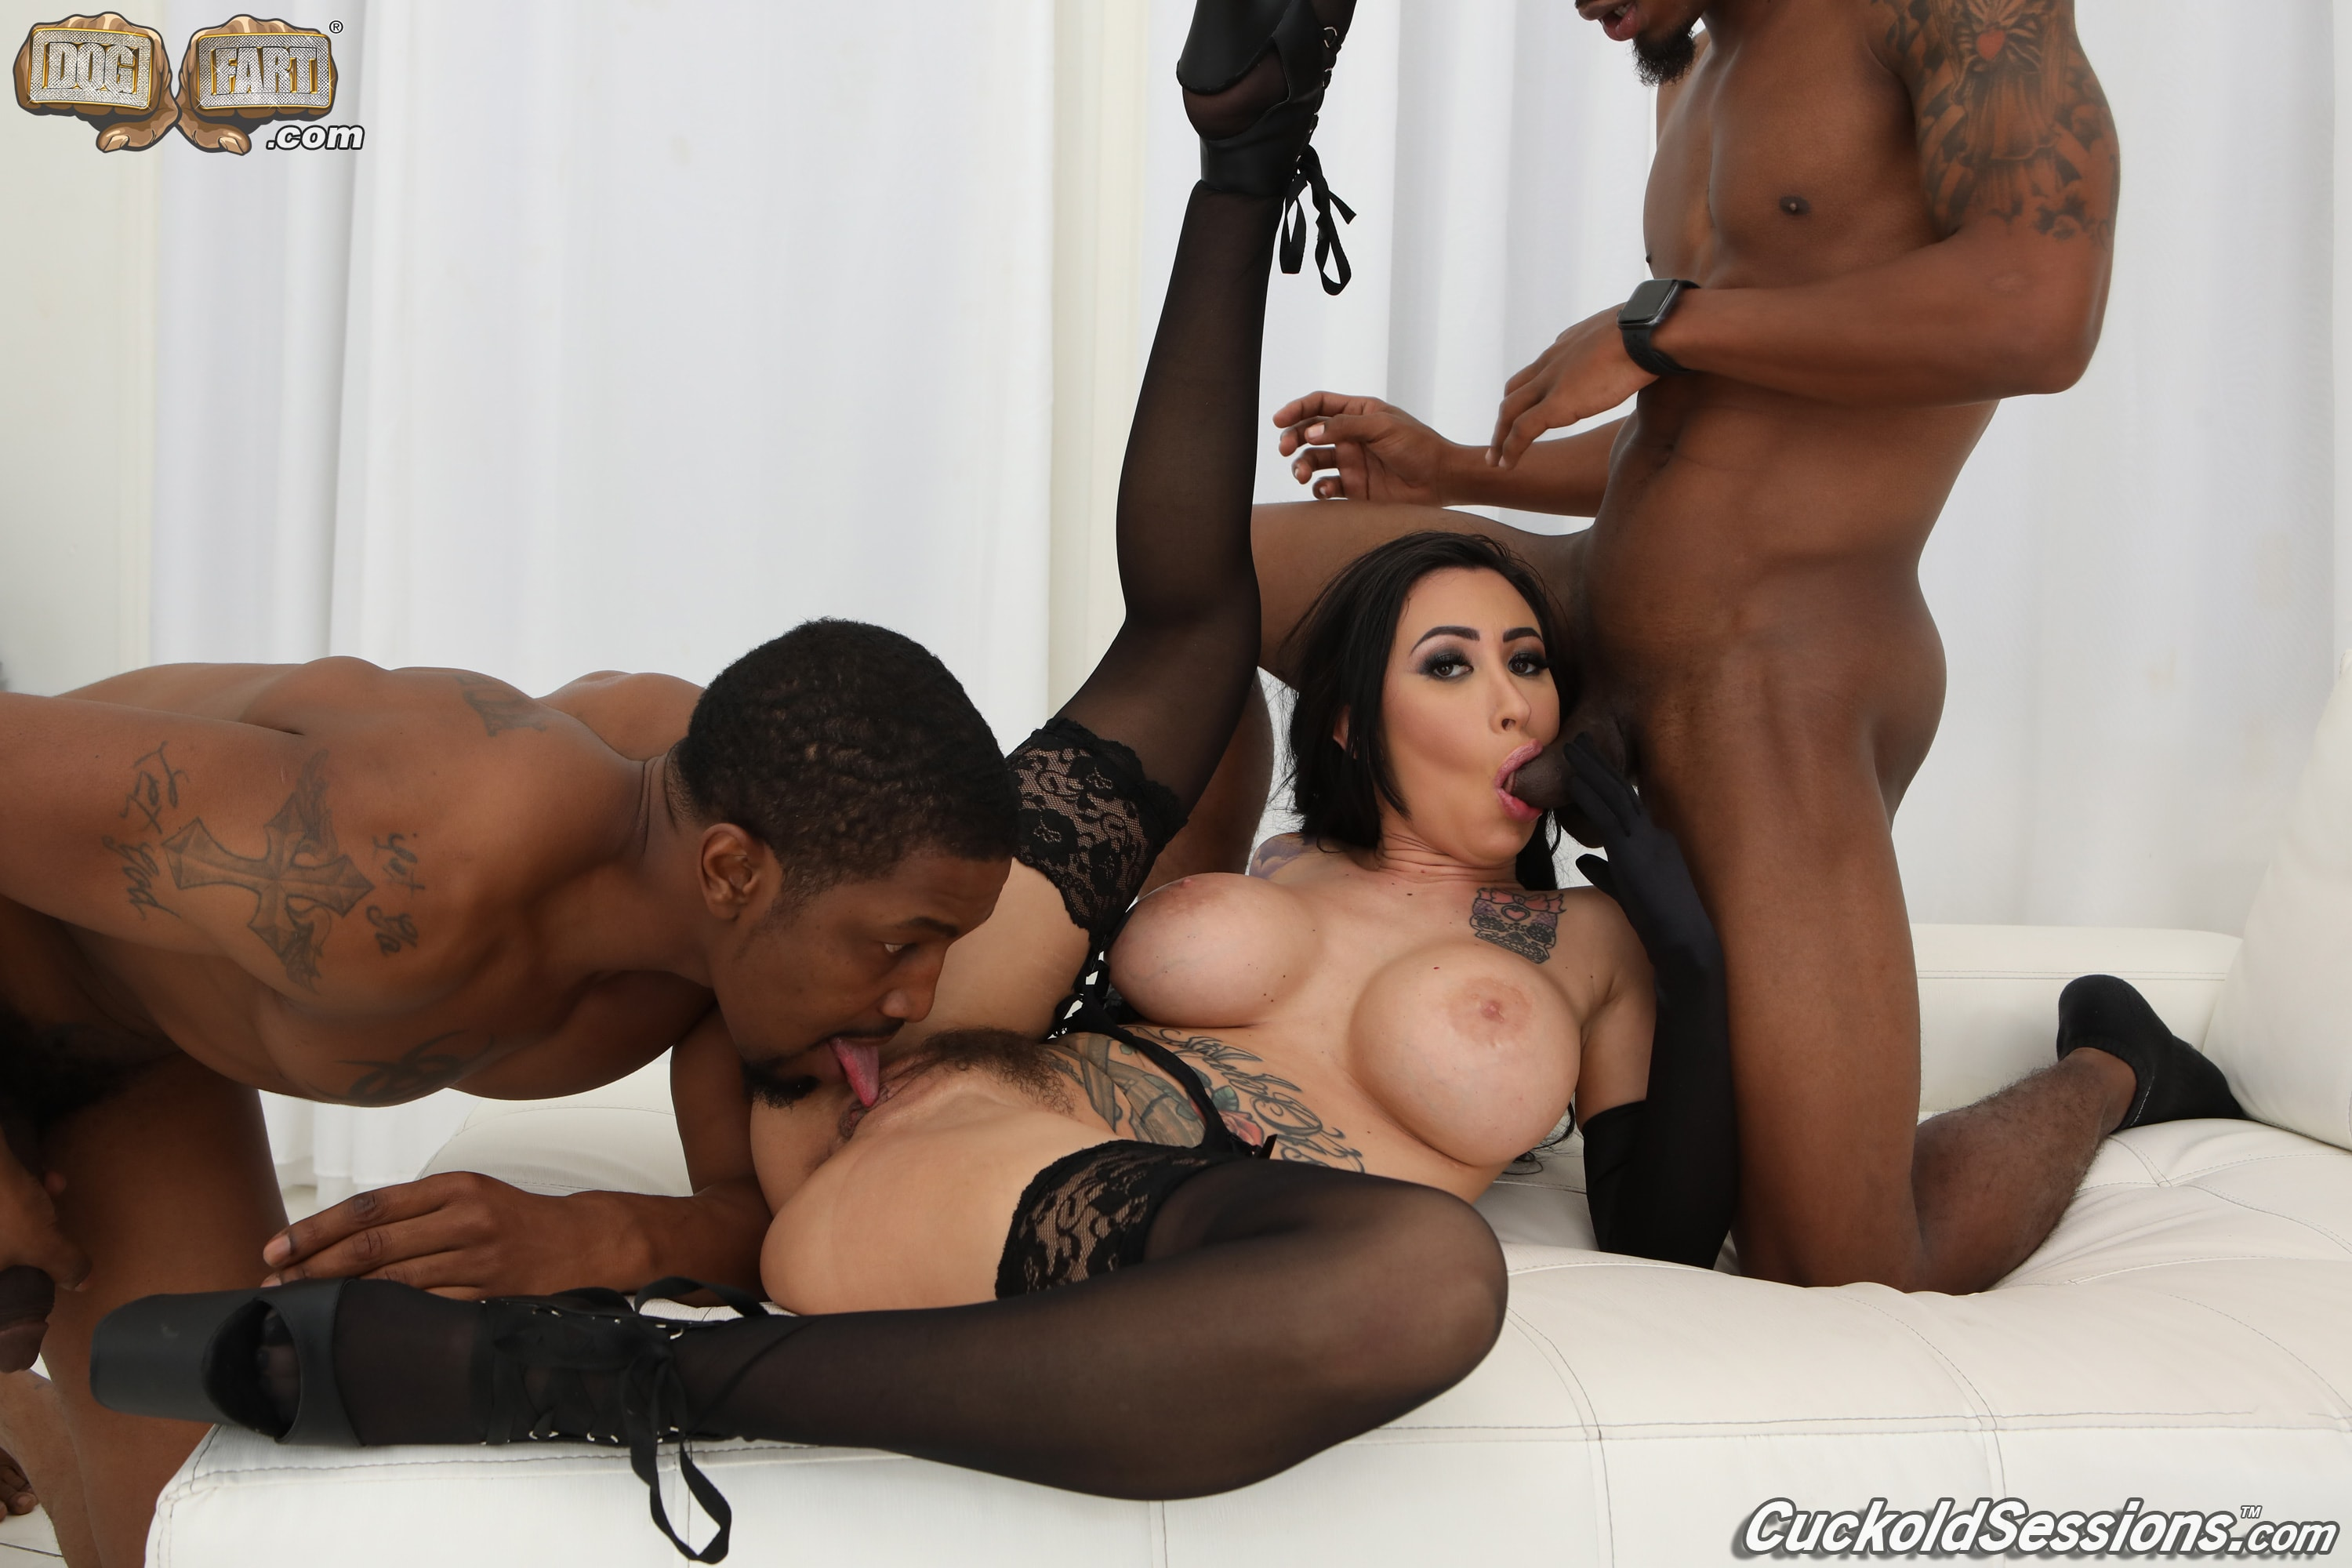 Dogfart '- Cuckold Sessions' starring Lily Lane (Photo 12)